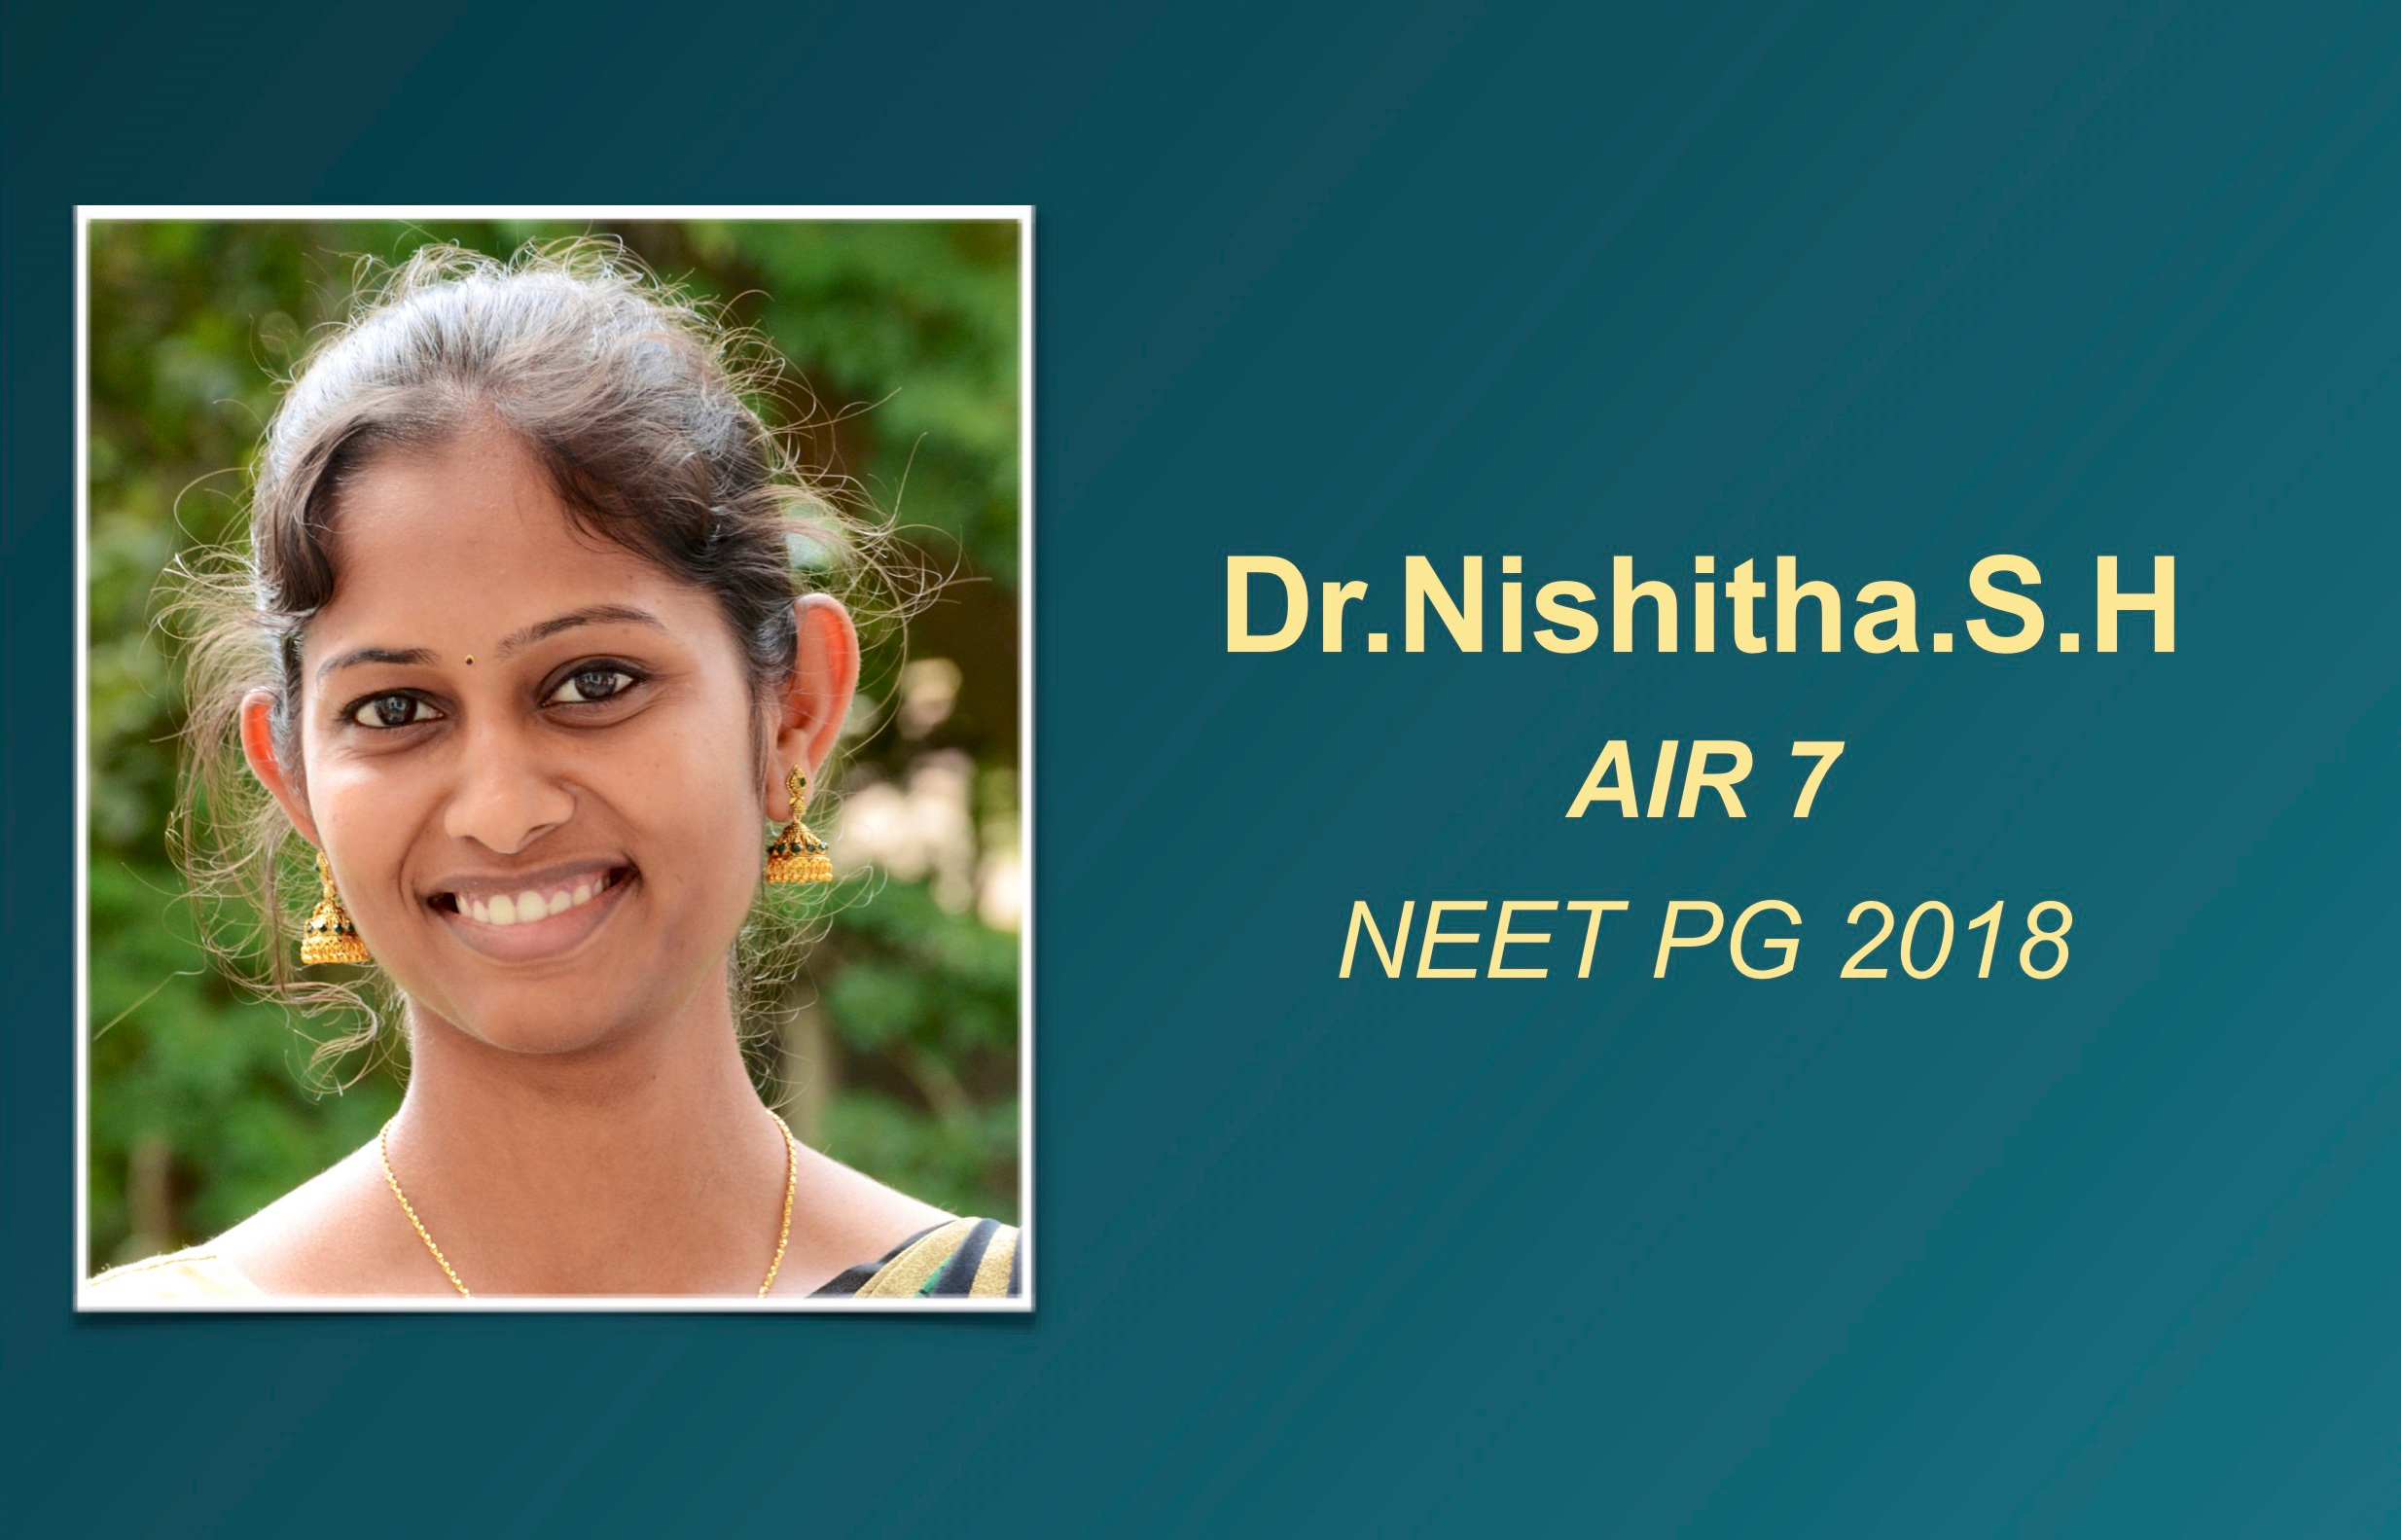 How Dr Nishitha aced an AIR 7 in NEET PG 2018 with just 7